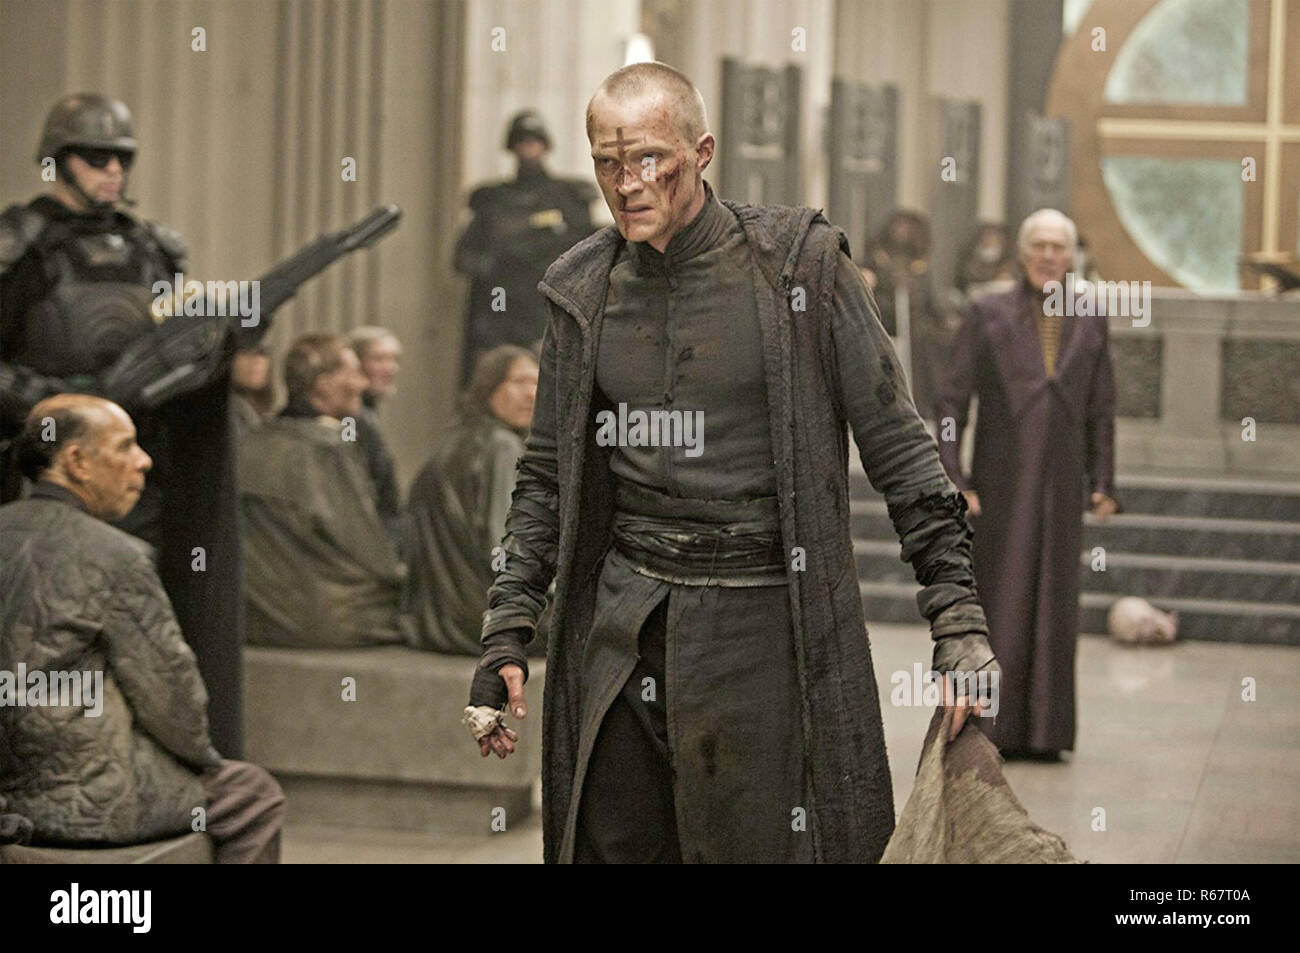 PRIEST 2011 Screen Gems film with Paul Bettany - Stock Image